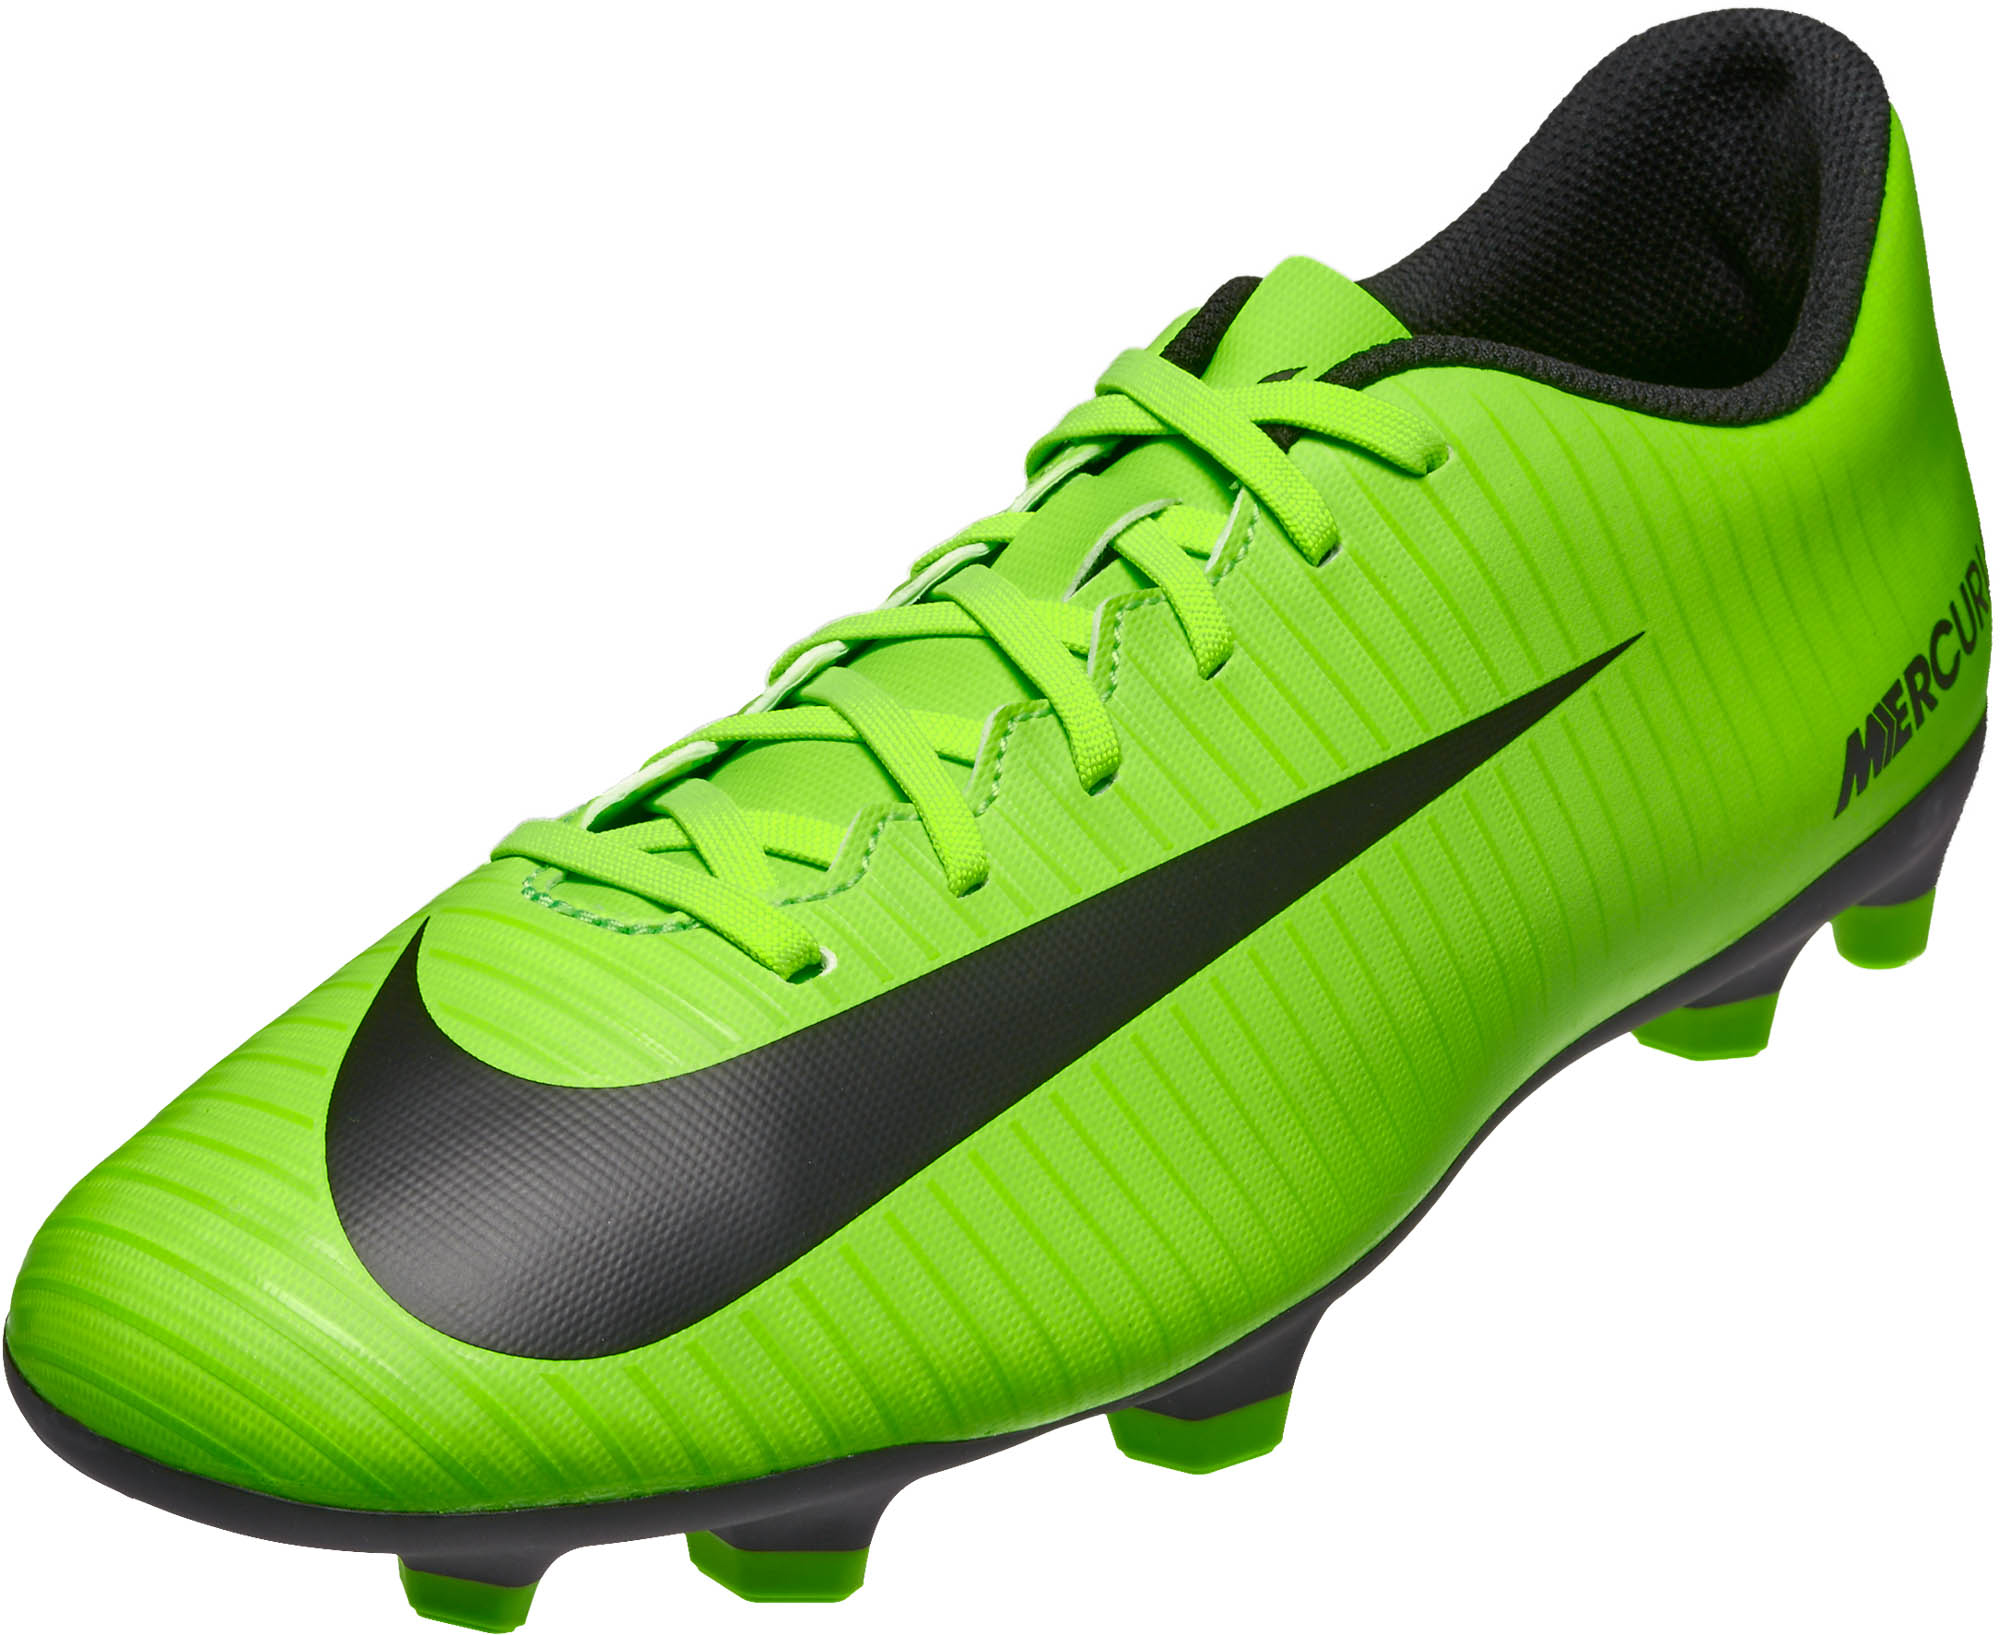 30b2e40965e Nike Mercurial Vortex III FG – Electric Green Flash Lime